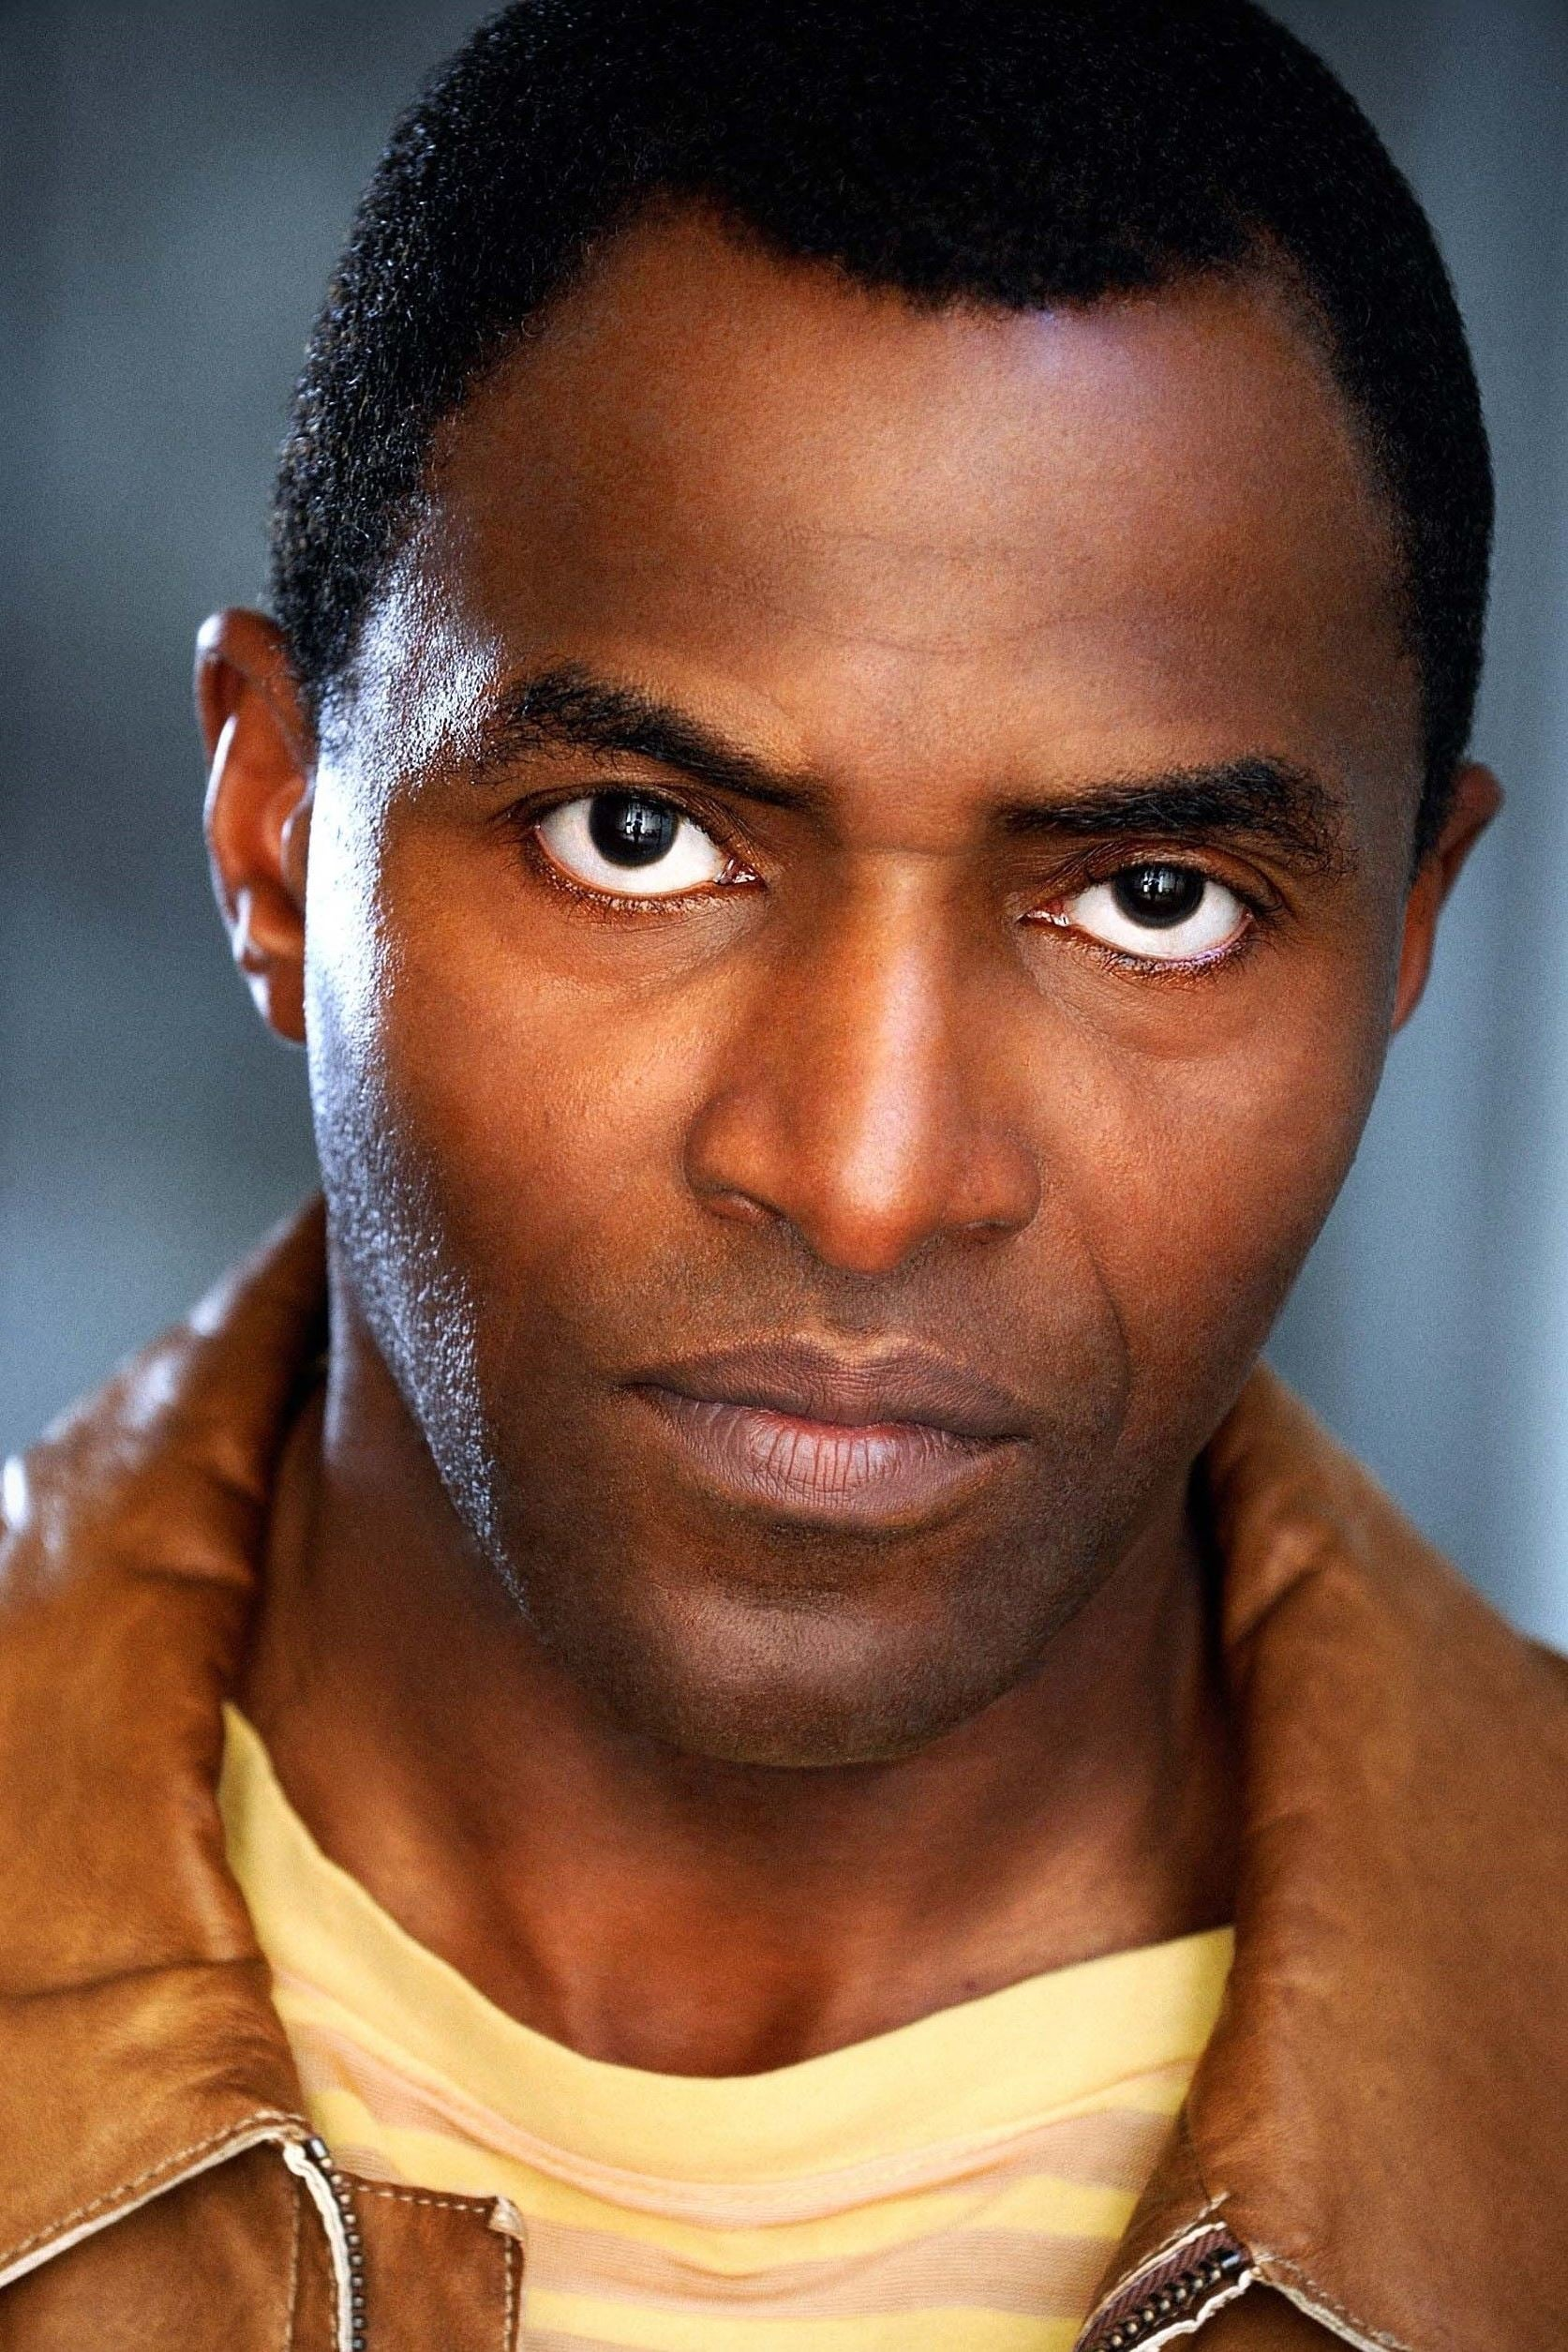 Carl Lumbly / Dick Halloran